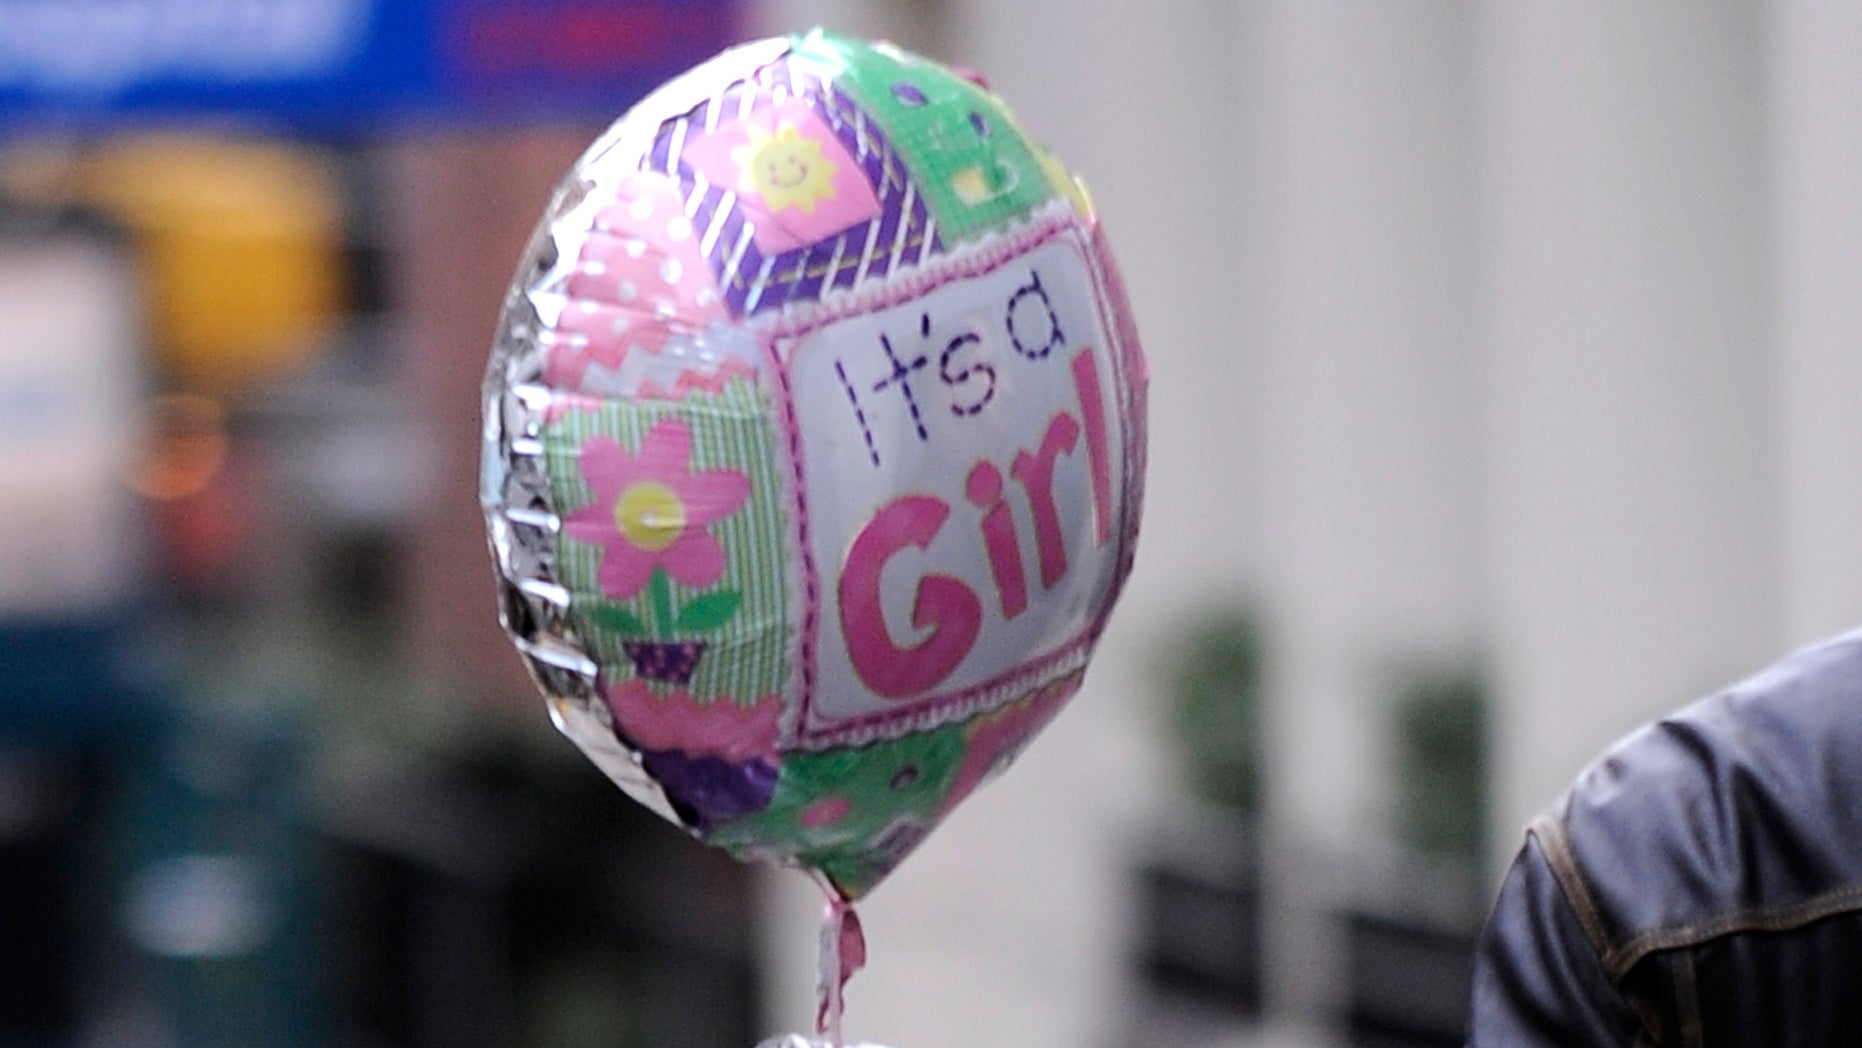 """08 January 2012 - New York - A man with """"It's a girl"""" baloons walked out of Lenox Hill Hospital entrance on 77th Street between Lexington Avenue and Park Avenue where singer Beyonce gave birth to daughter Blue Ivy Carter on January 7, 2012,  New York, NY. Photo Credit: Anthony Behar/Sipa Press"""